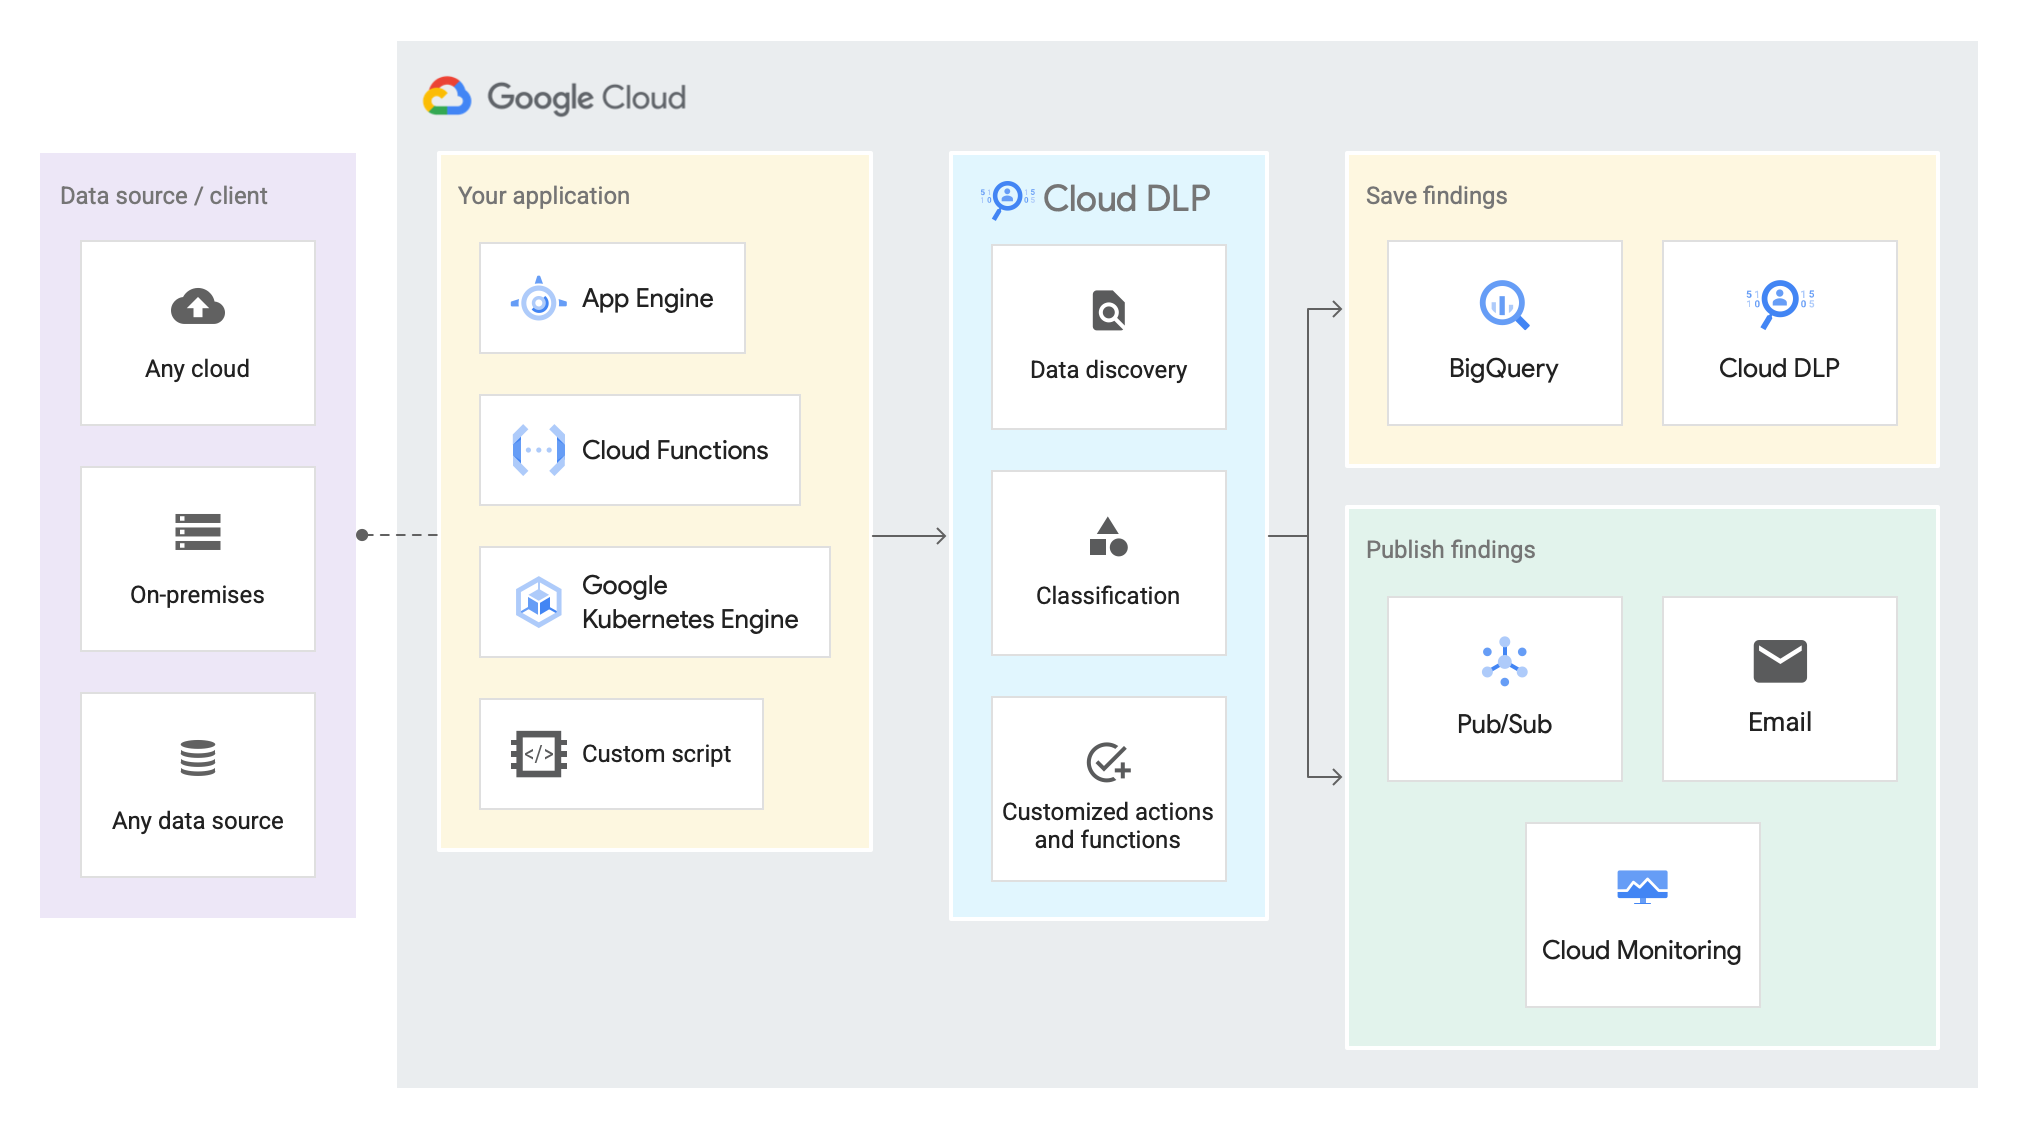 Diagram of hybrid jobs dataflow, showing your application sending data from an external source to Cloud DLP, Cloud DLP inspecting the data, and then either saving or publishing findings.